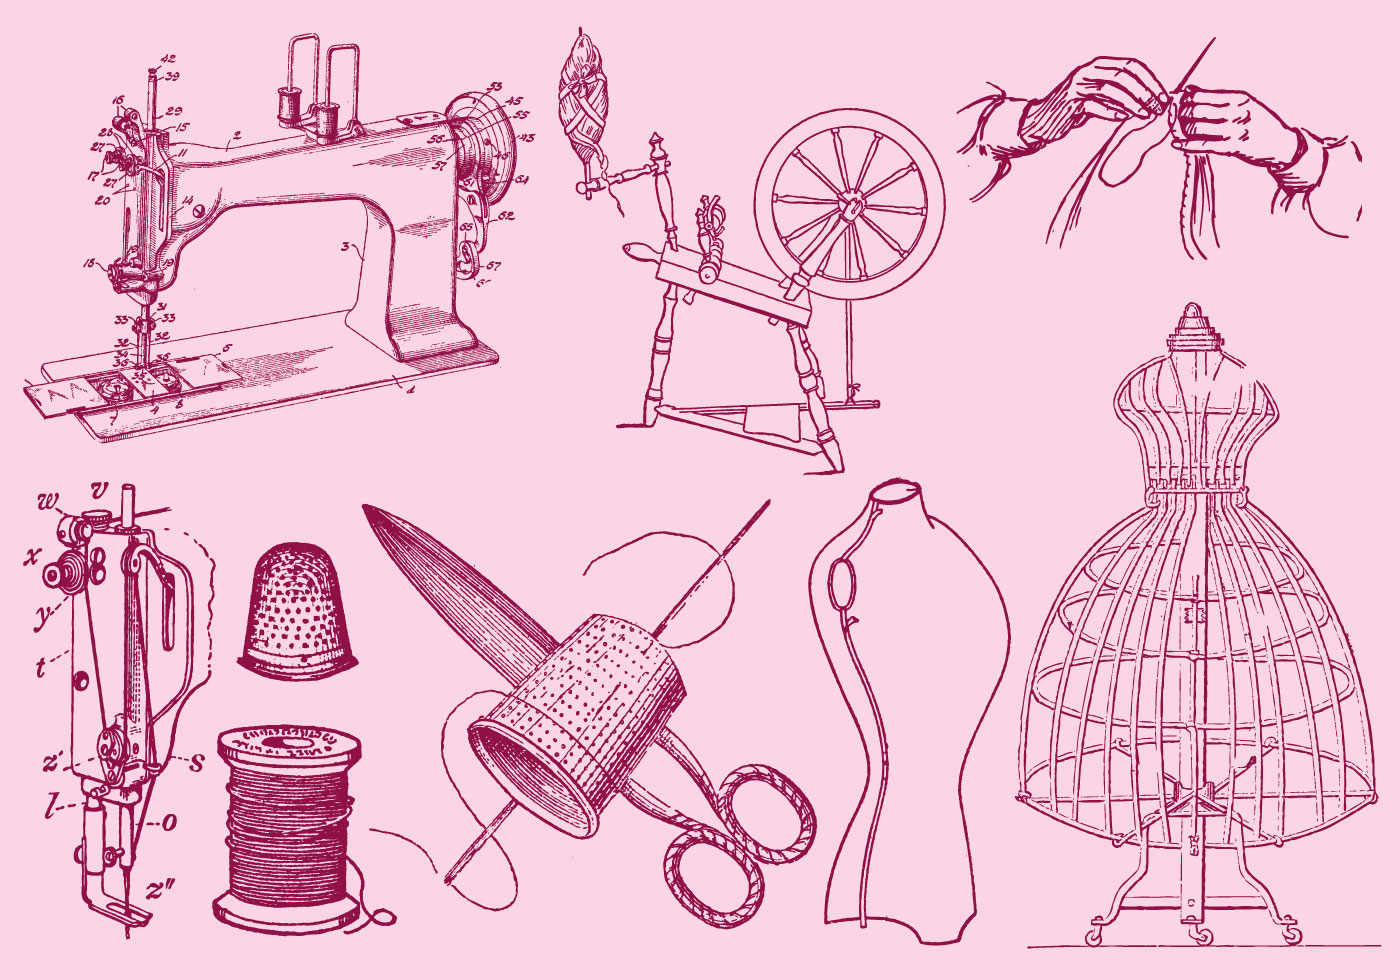 Fashion And Sewing Drawing - Download Free Vectors ...